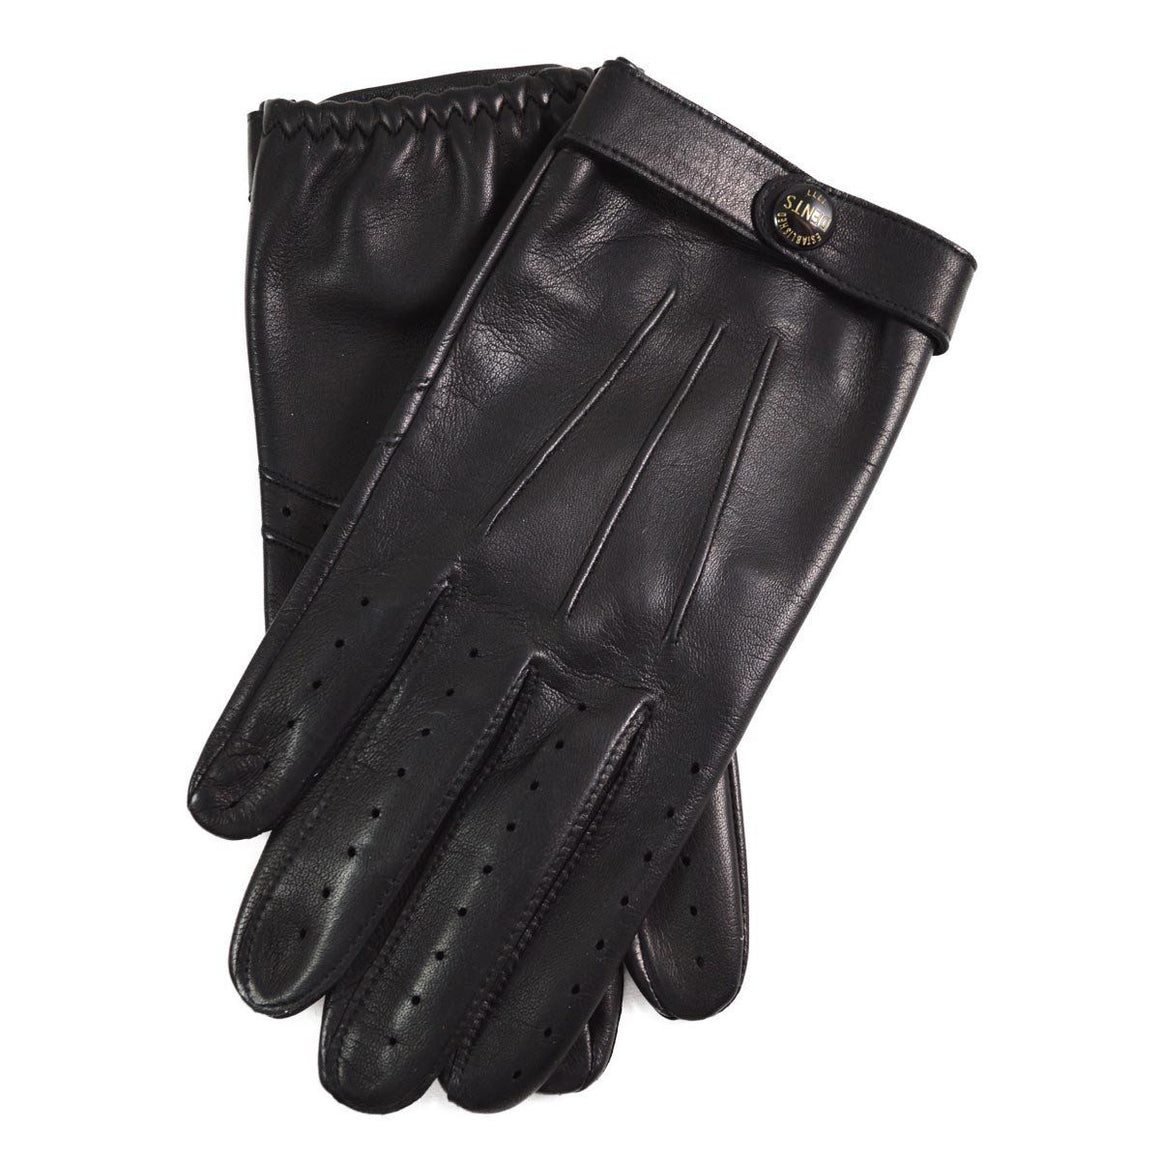 DENTS FLEMING Bond 007 Spectre Leather Driving Gloves